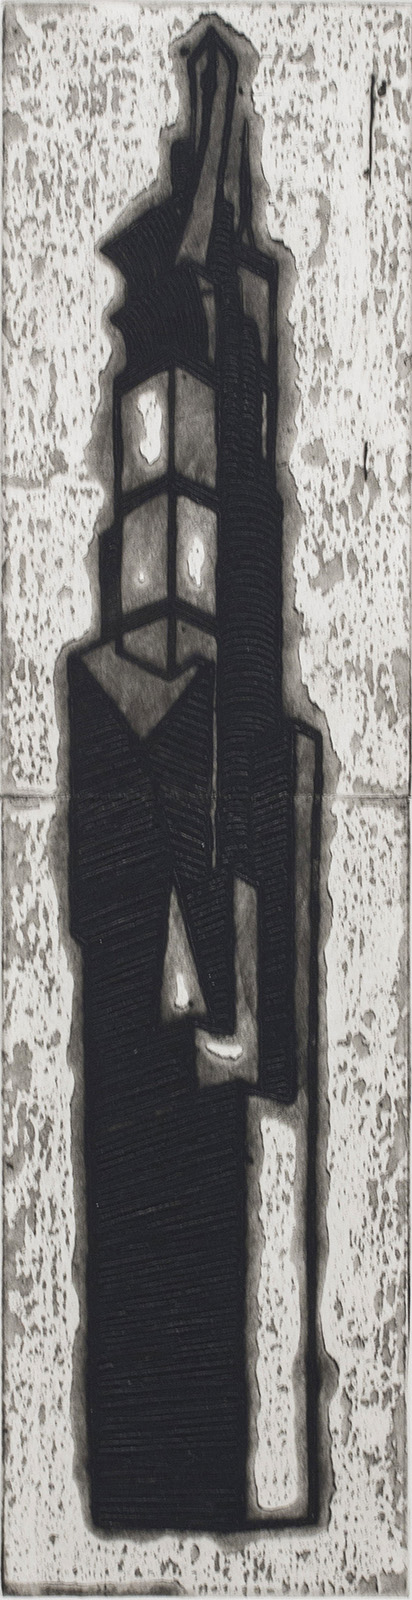 Nicola López, Ideal Structures for a Dubious Future  (Tallest Tower), 2012